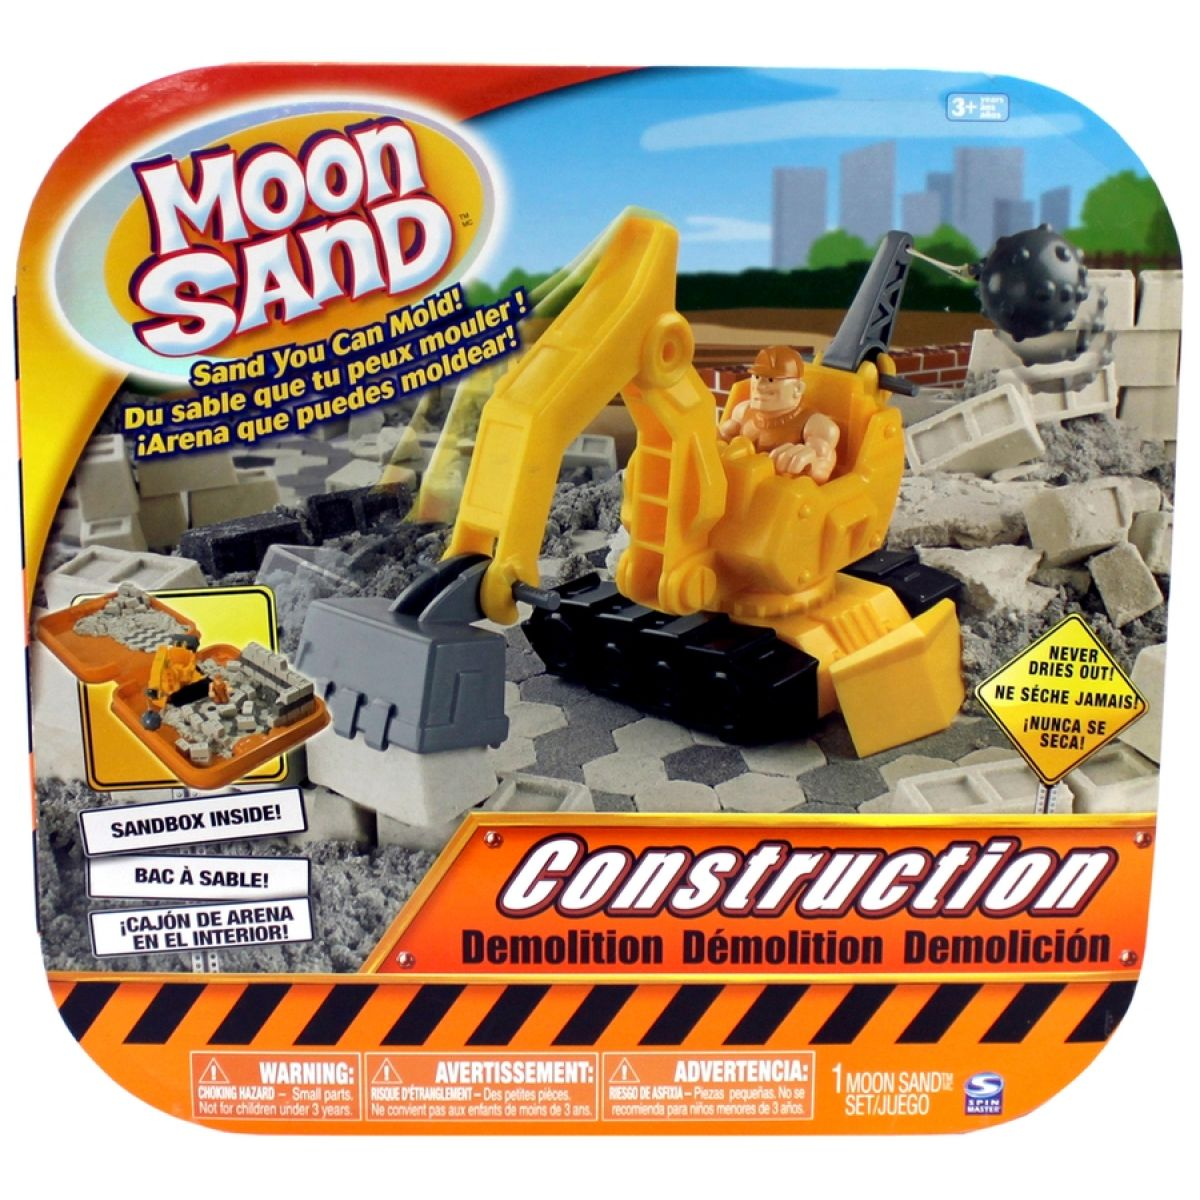 Moon Sand Sada velká - Construction demolition